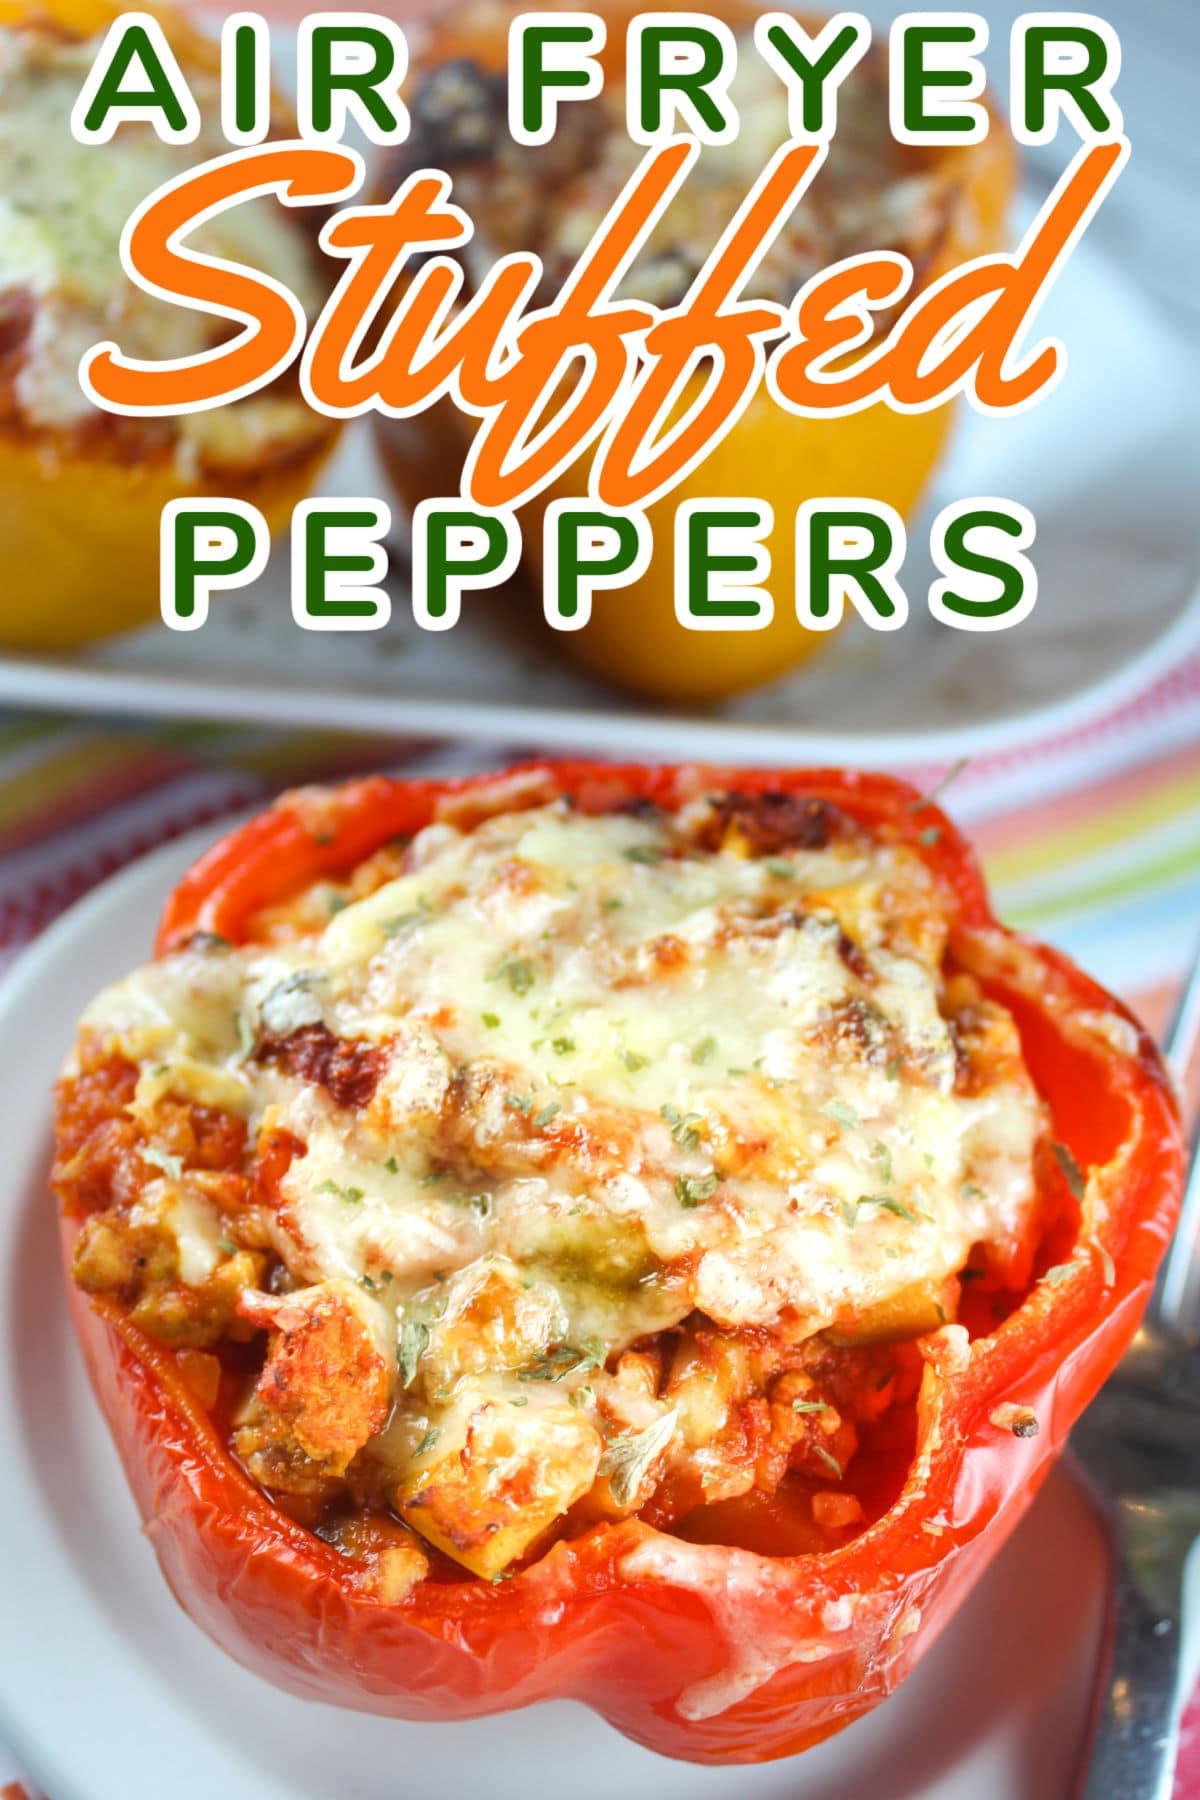 It's a new year and that means HEALTHY food starts today! These Air Fryer Stuffed Peppers are also made for Weight Watchers! You won't believe that 1 1/2 peppers are only 1-2 points (depending on your plan) and for those not on WW - I'll tell you - they are delicious AND HEALTHY! via @foodhussy